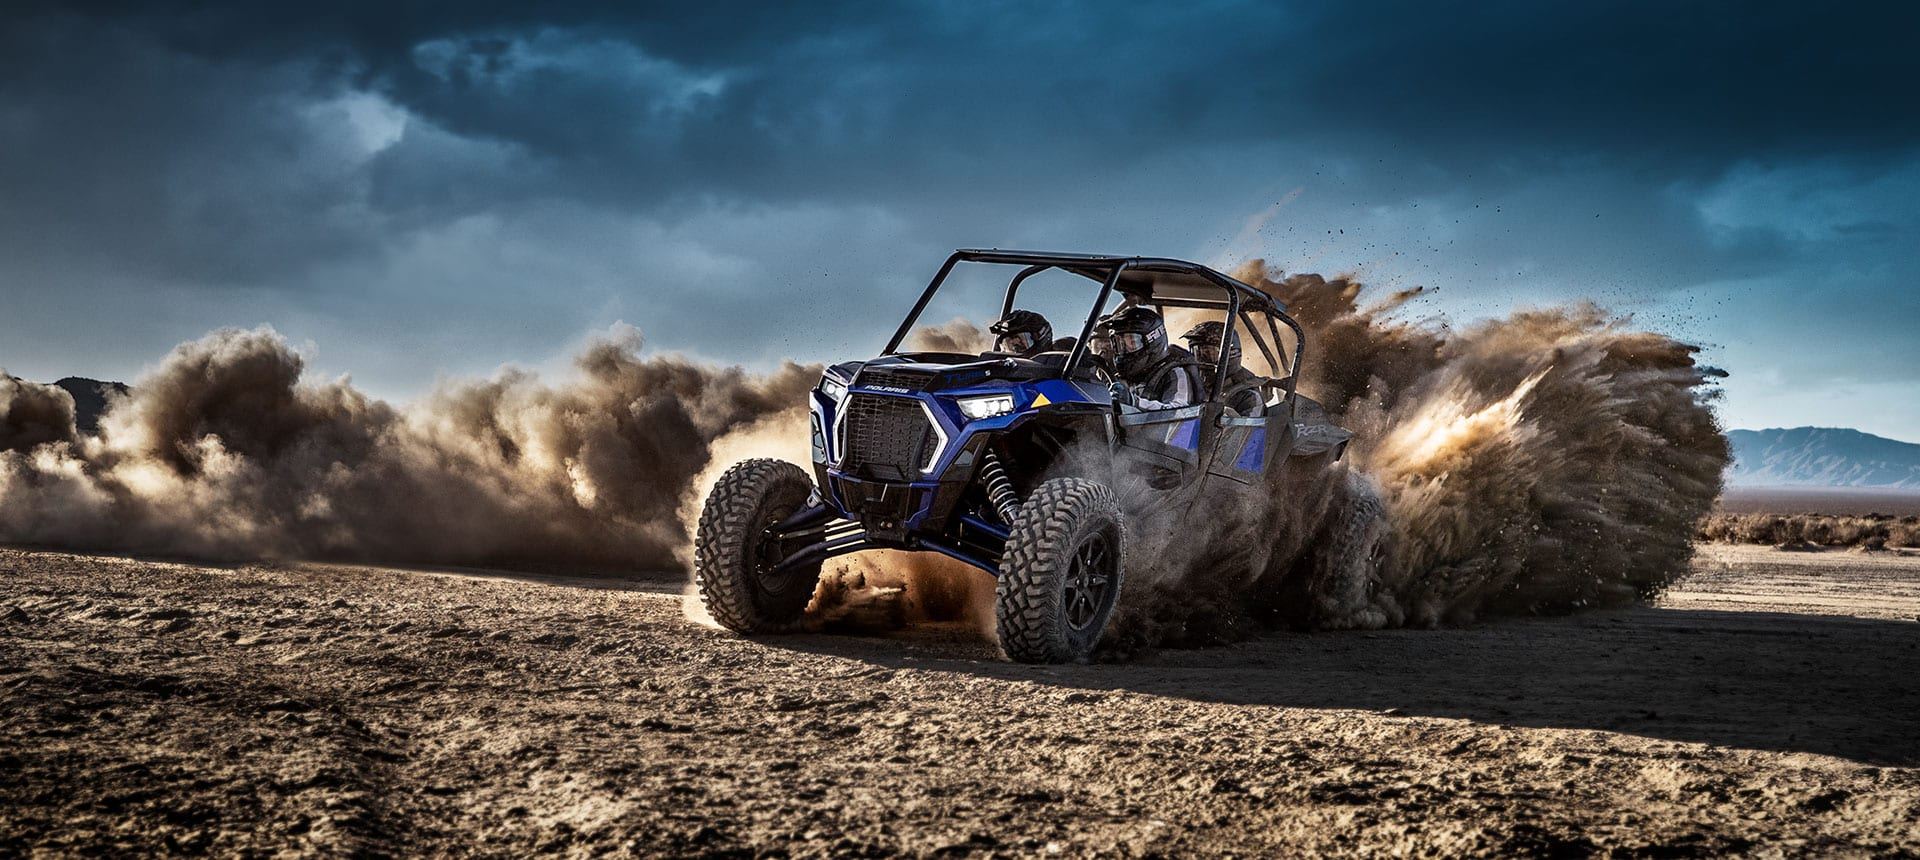 RZR XP 4 TOURBO S 4 SEATER OFFROAD VEHICLE